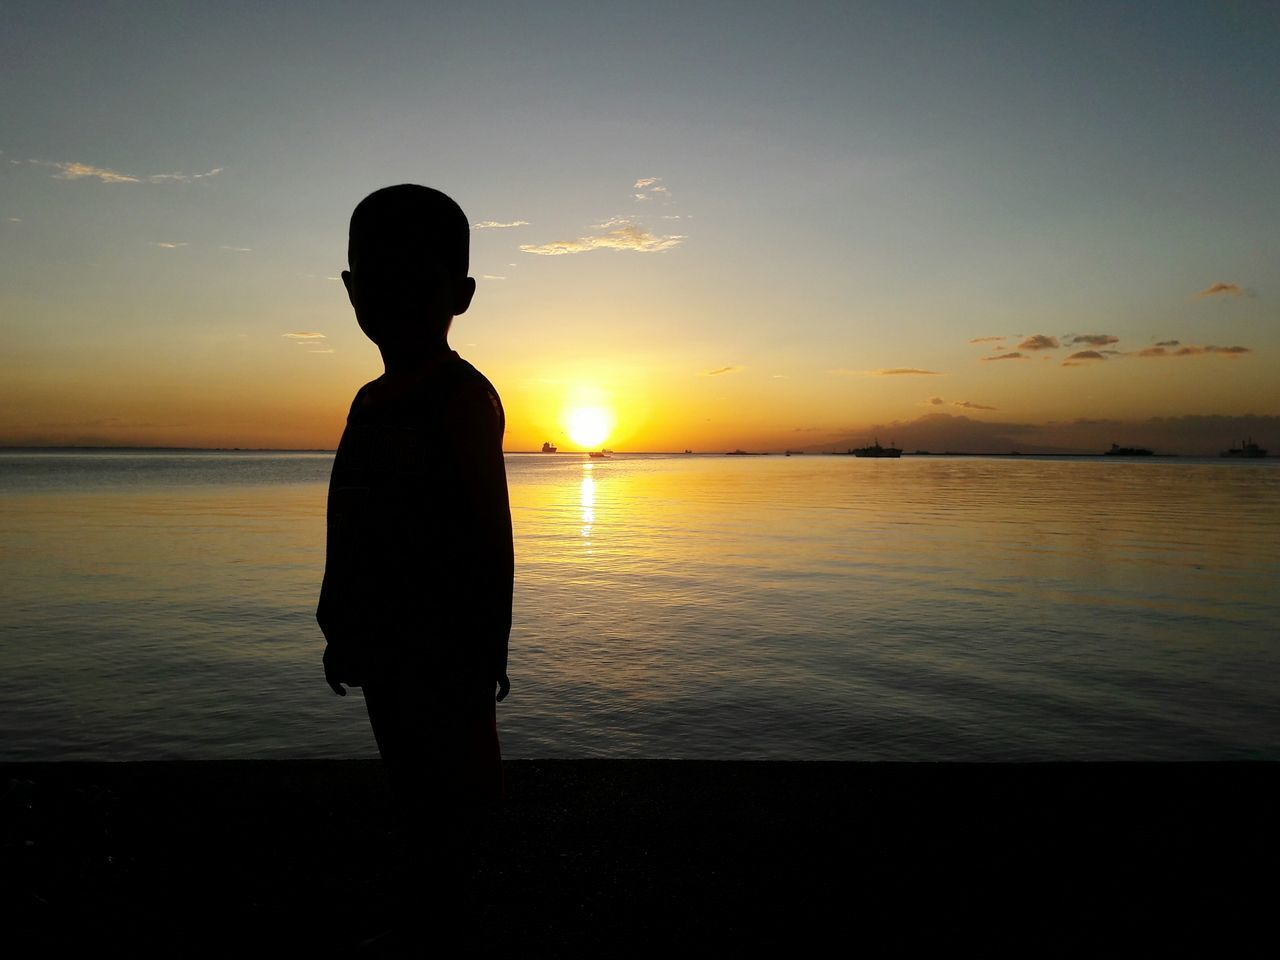 Beginnings of a Little Boy Chance Encounters Street Photography Sunset Beauty In Nature Outdoors Urban Cityscape Little Boy Silhouette Gold Colored One Person Sea Day Eyeem Philippines My Year My View Wander